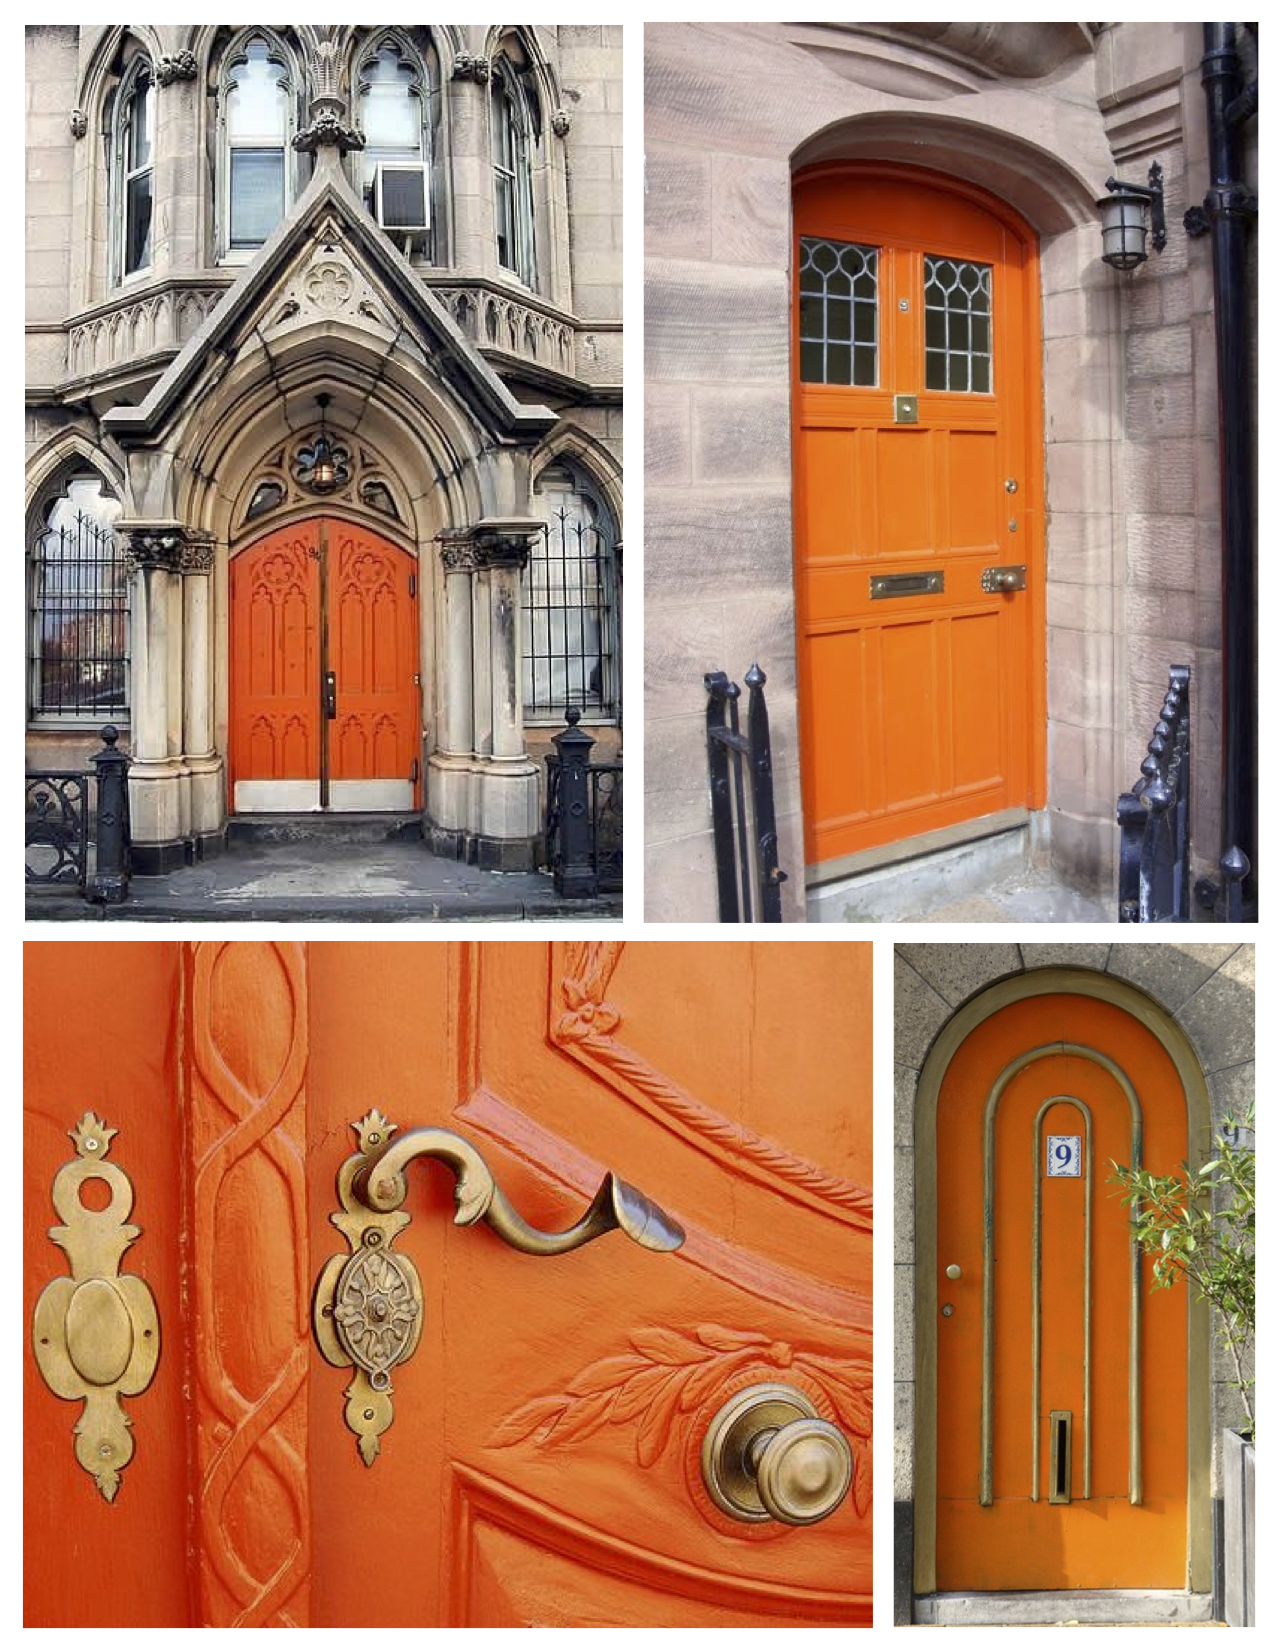 The Brilliant Hued Orange Exterior Door